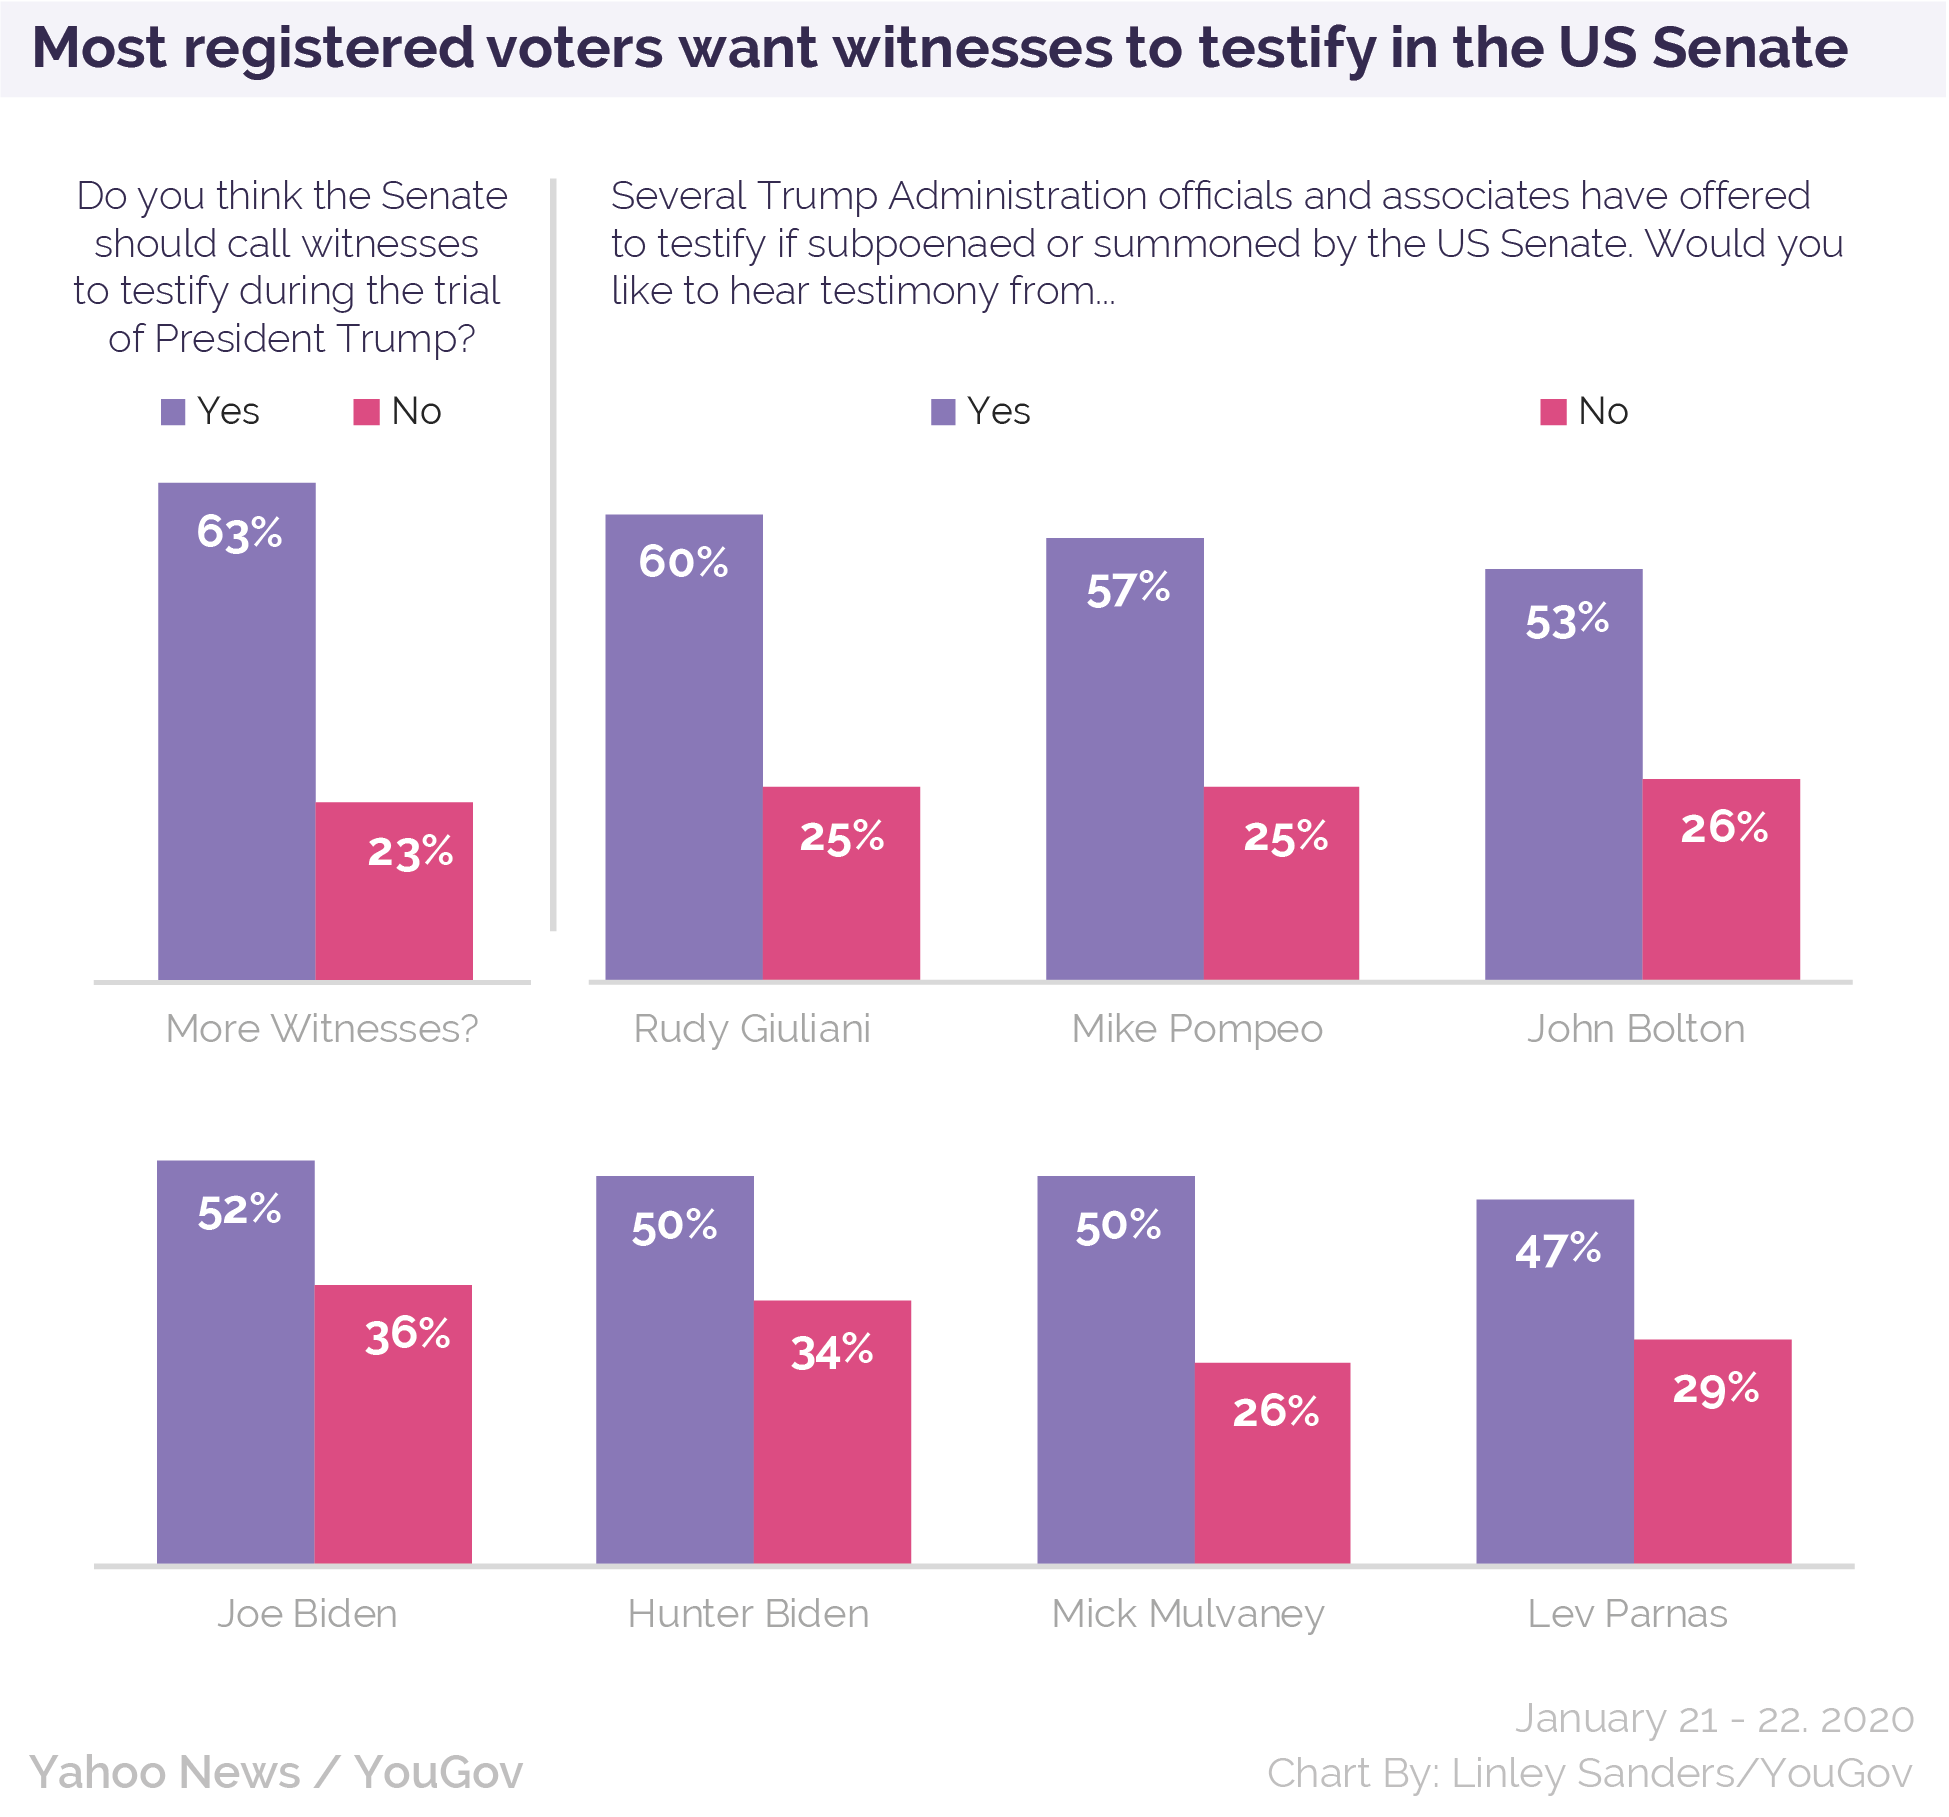 Most registered voters want witnesses to testify in the US Senate